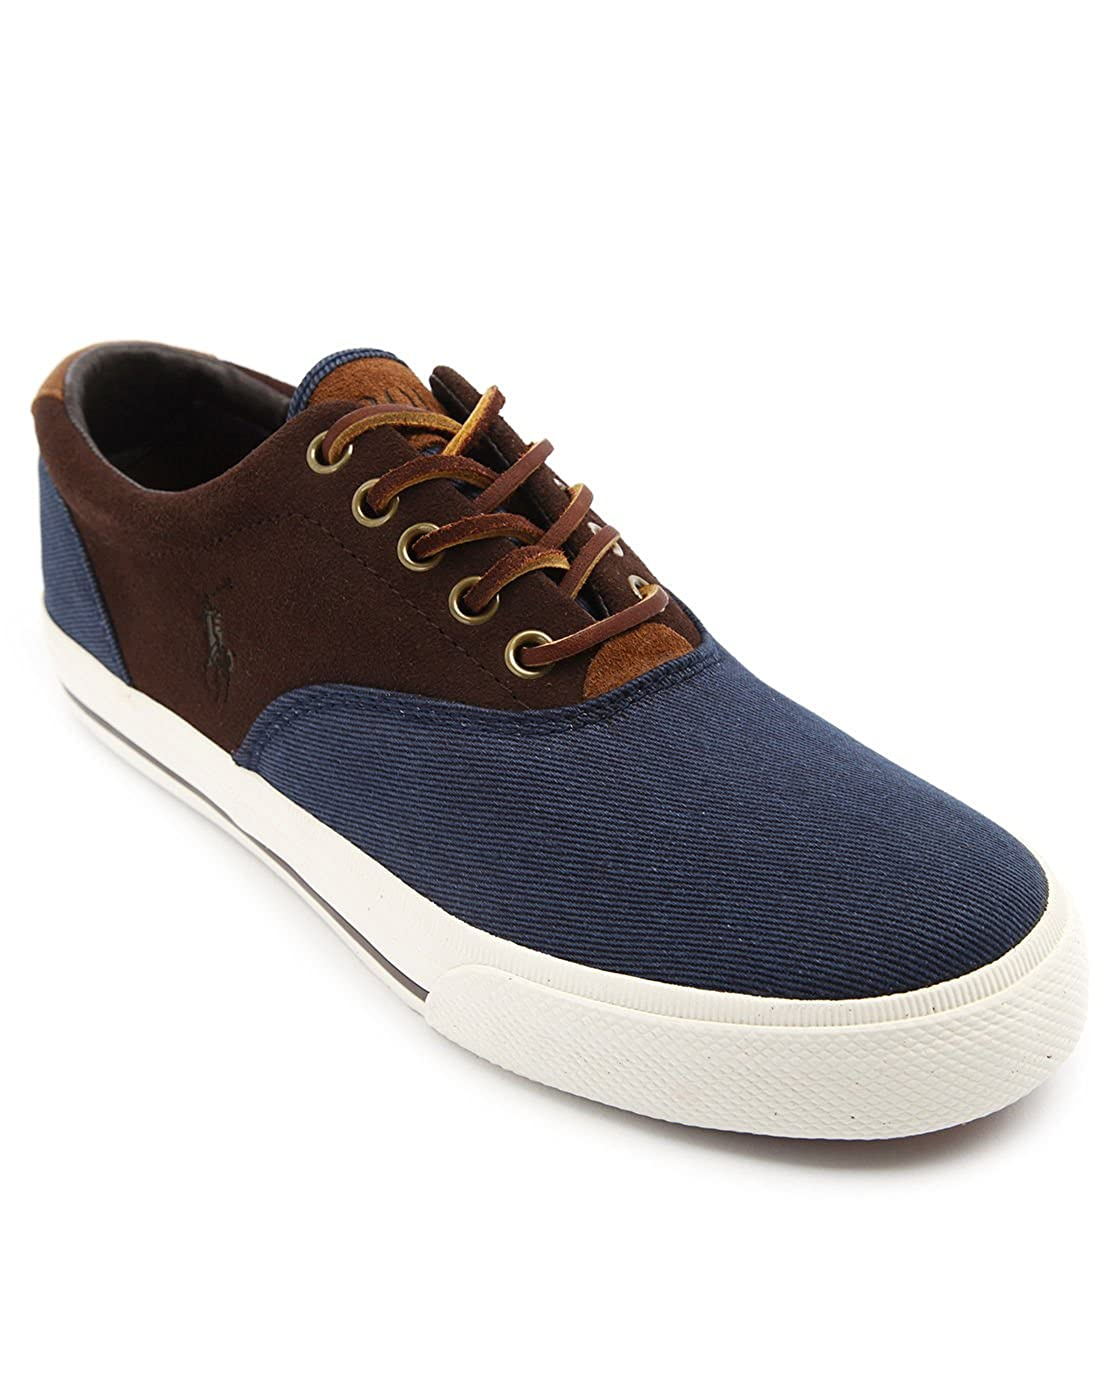 36b6569ec4 Polo Ralph Lauren - Sneakers - Men - Vaughn Brown and Blue Denim ...